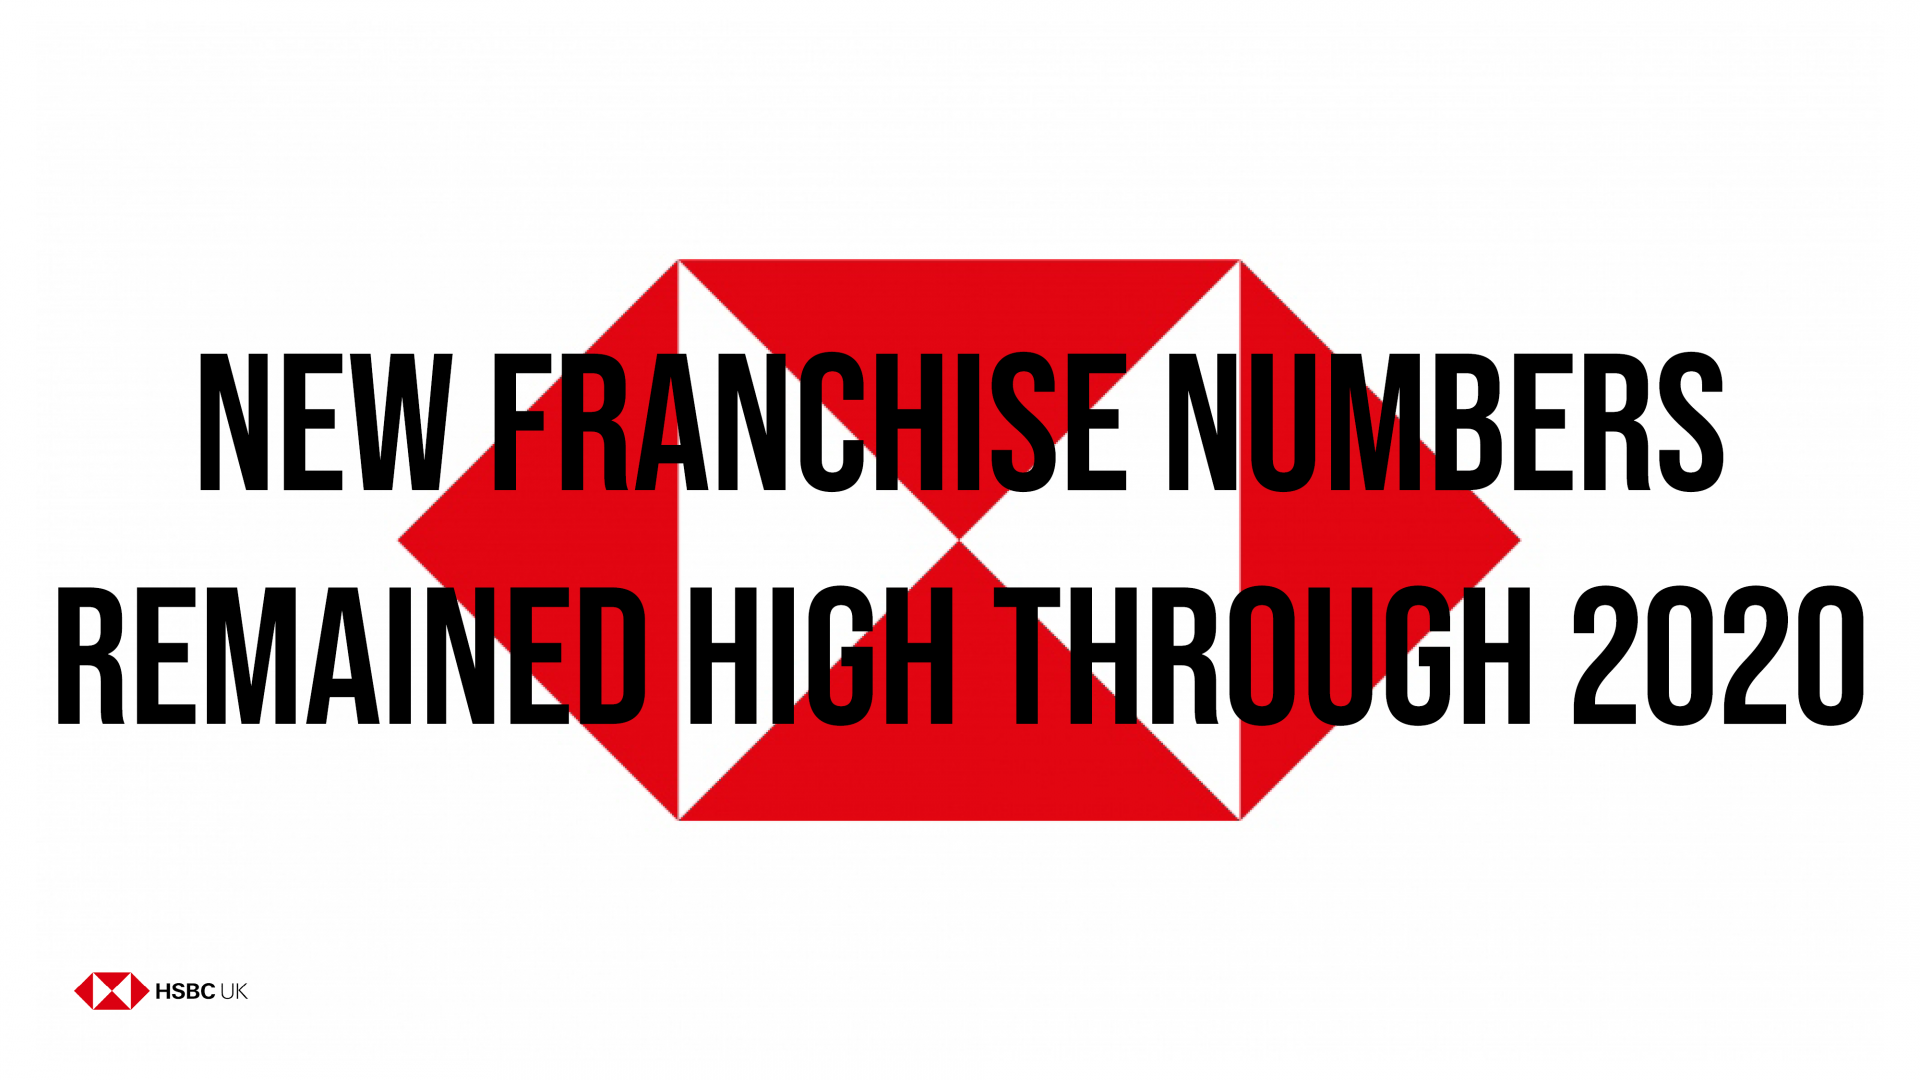 New franchise numbers remained high through 2020